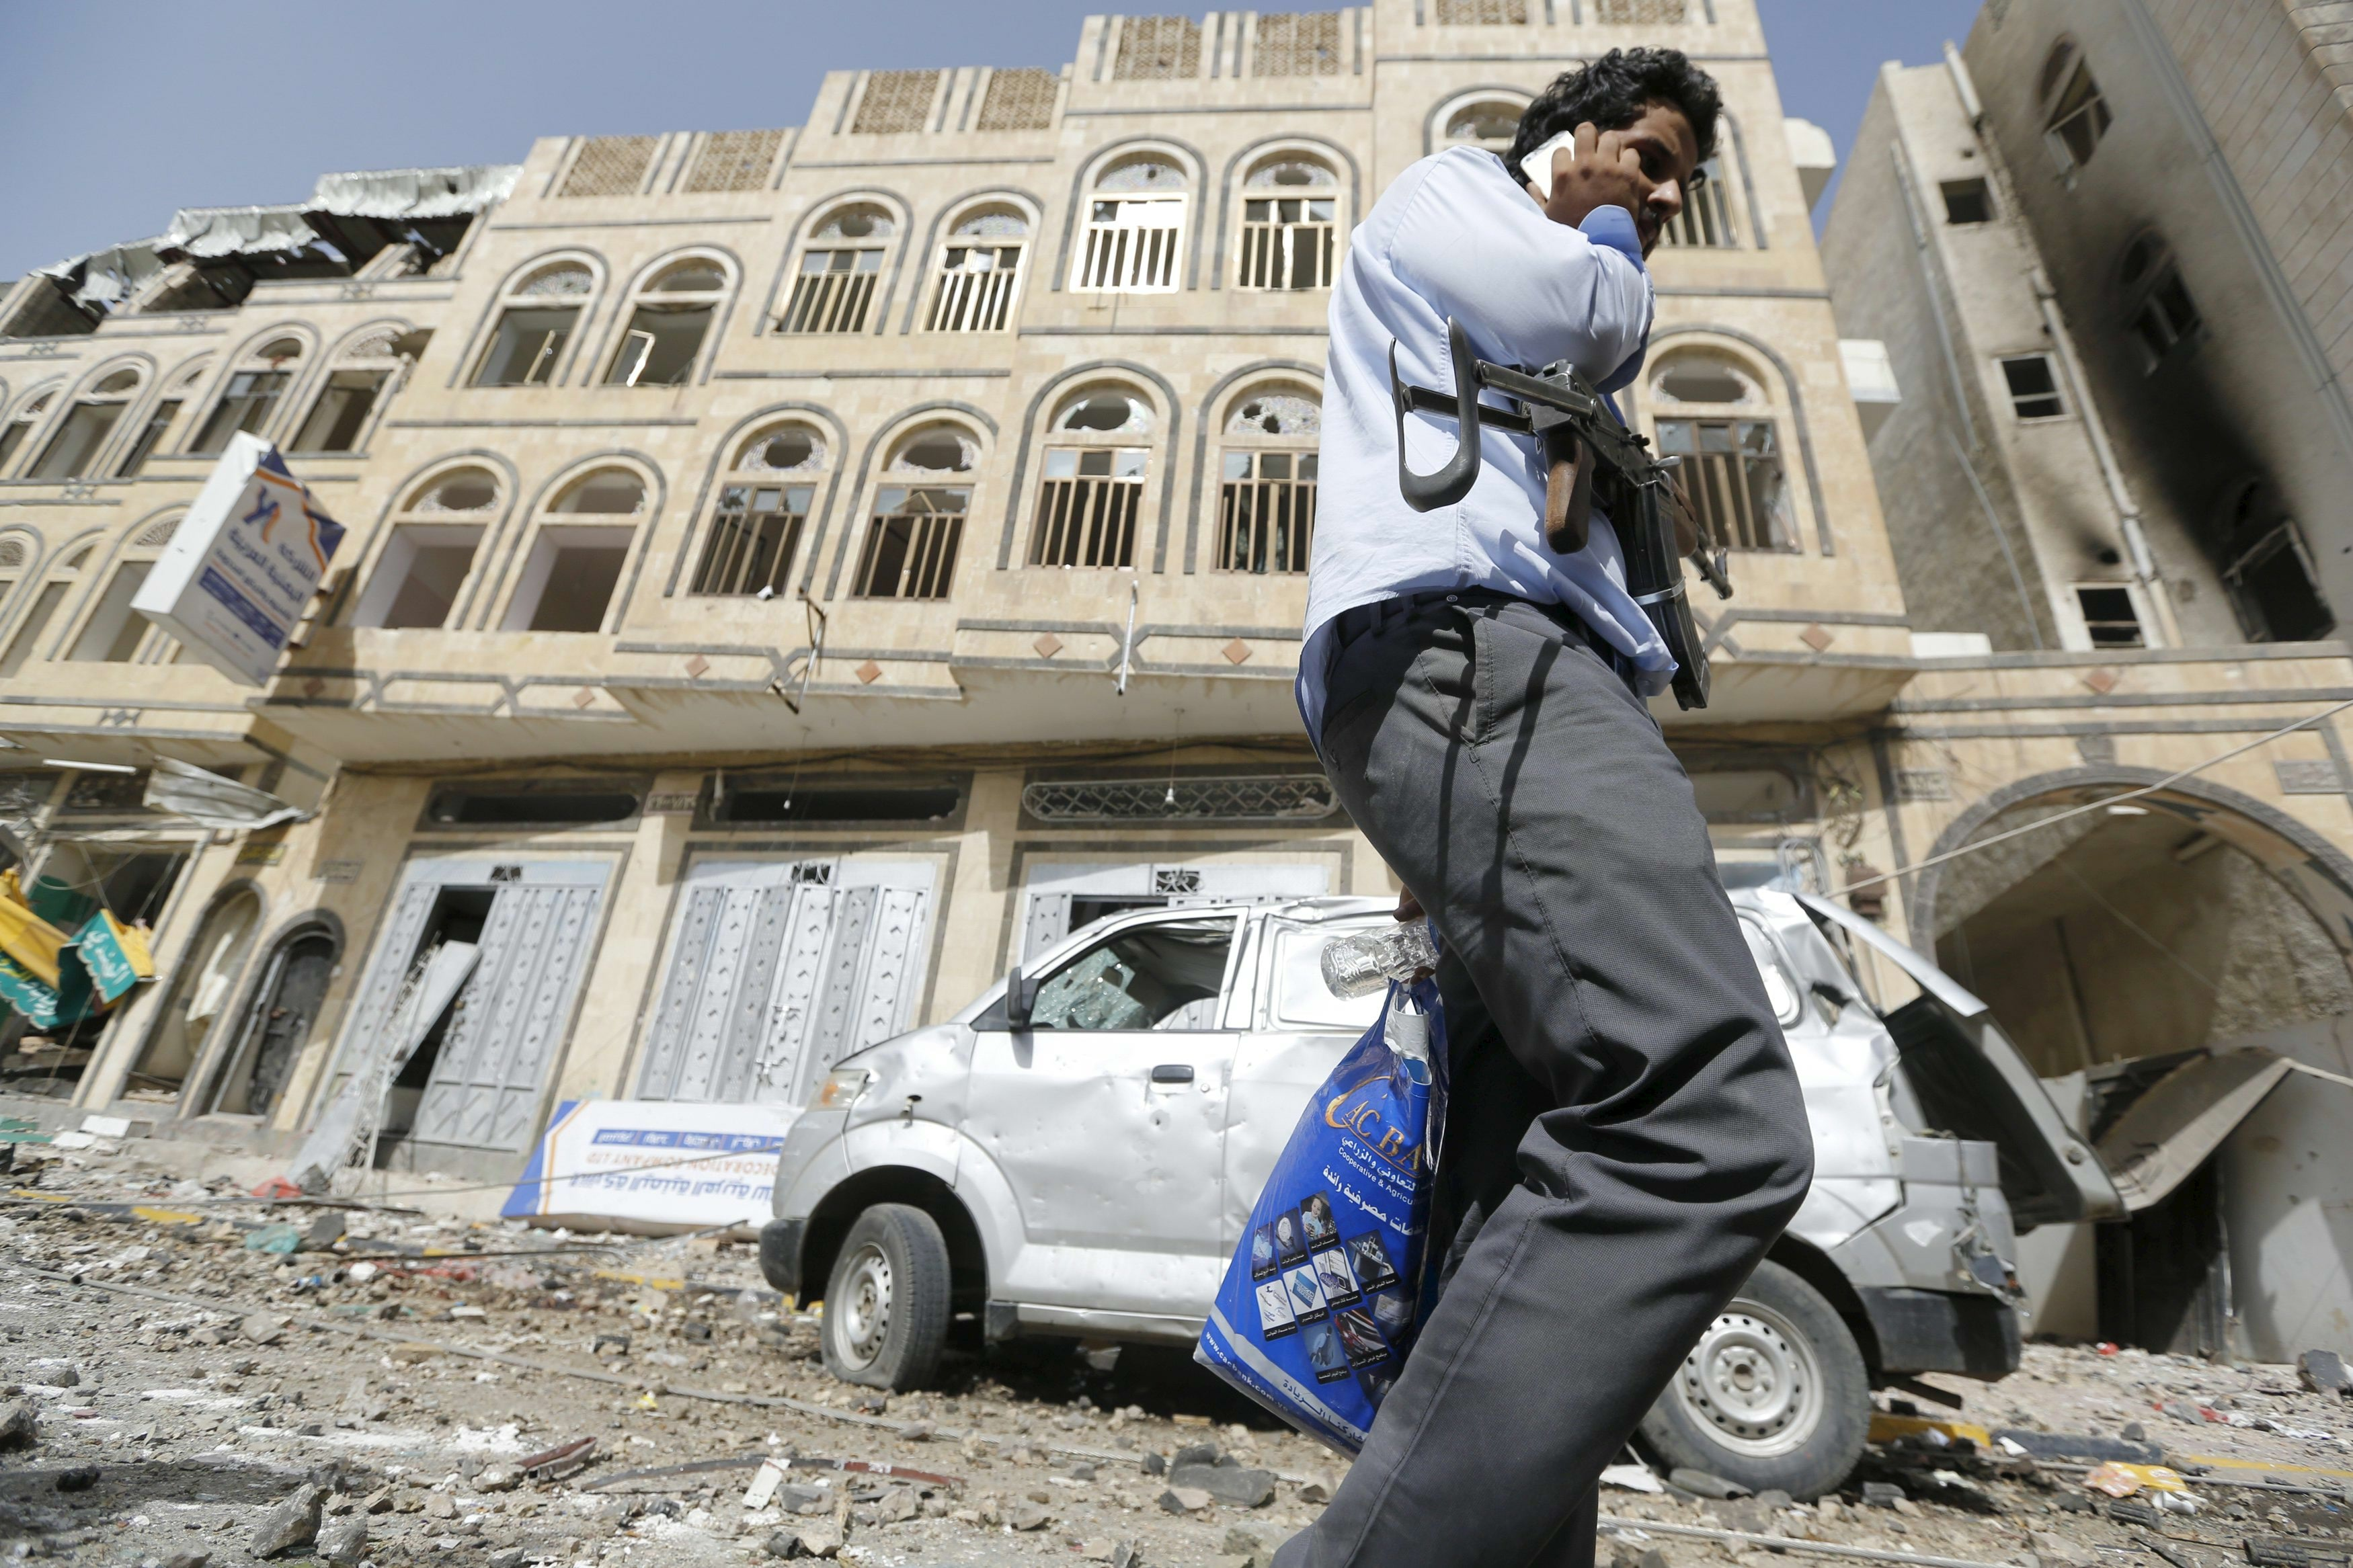 A man carrying a weapon talks on his mobile phone near a building damaged by an air strike on a nearby Scud missile base in Yemen's capital Sanaa